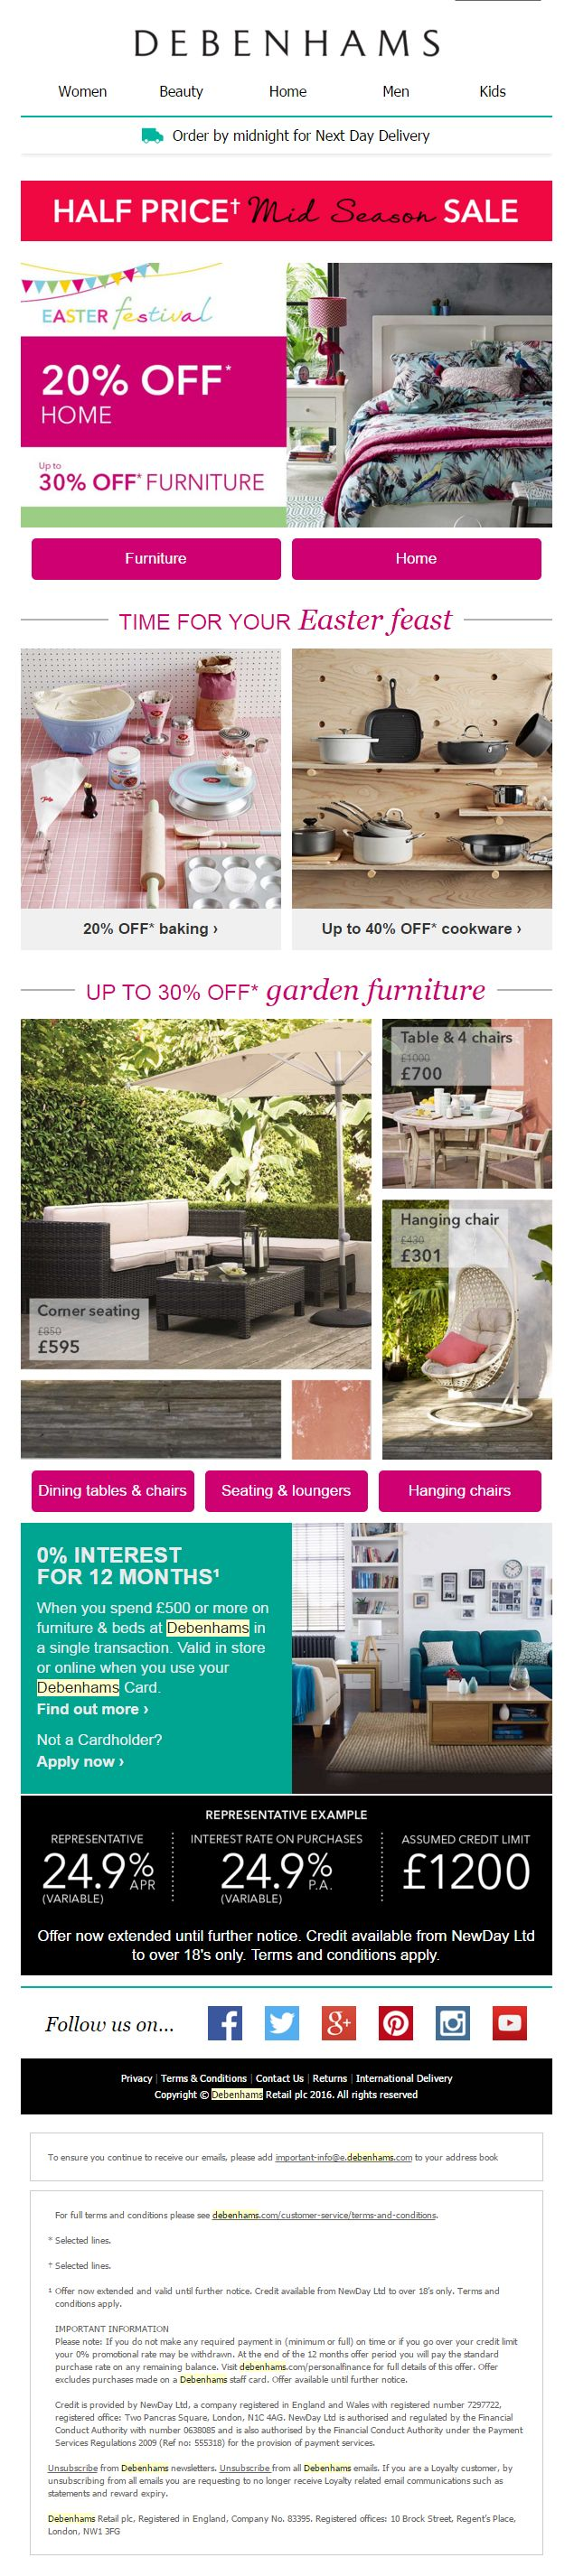 Debenhams Mid Season Sale email with product recommendations #EmailMarketing #Email #Marketing #Product #Recommendation #Home #Garden